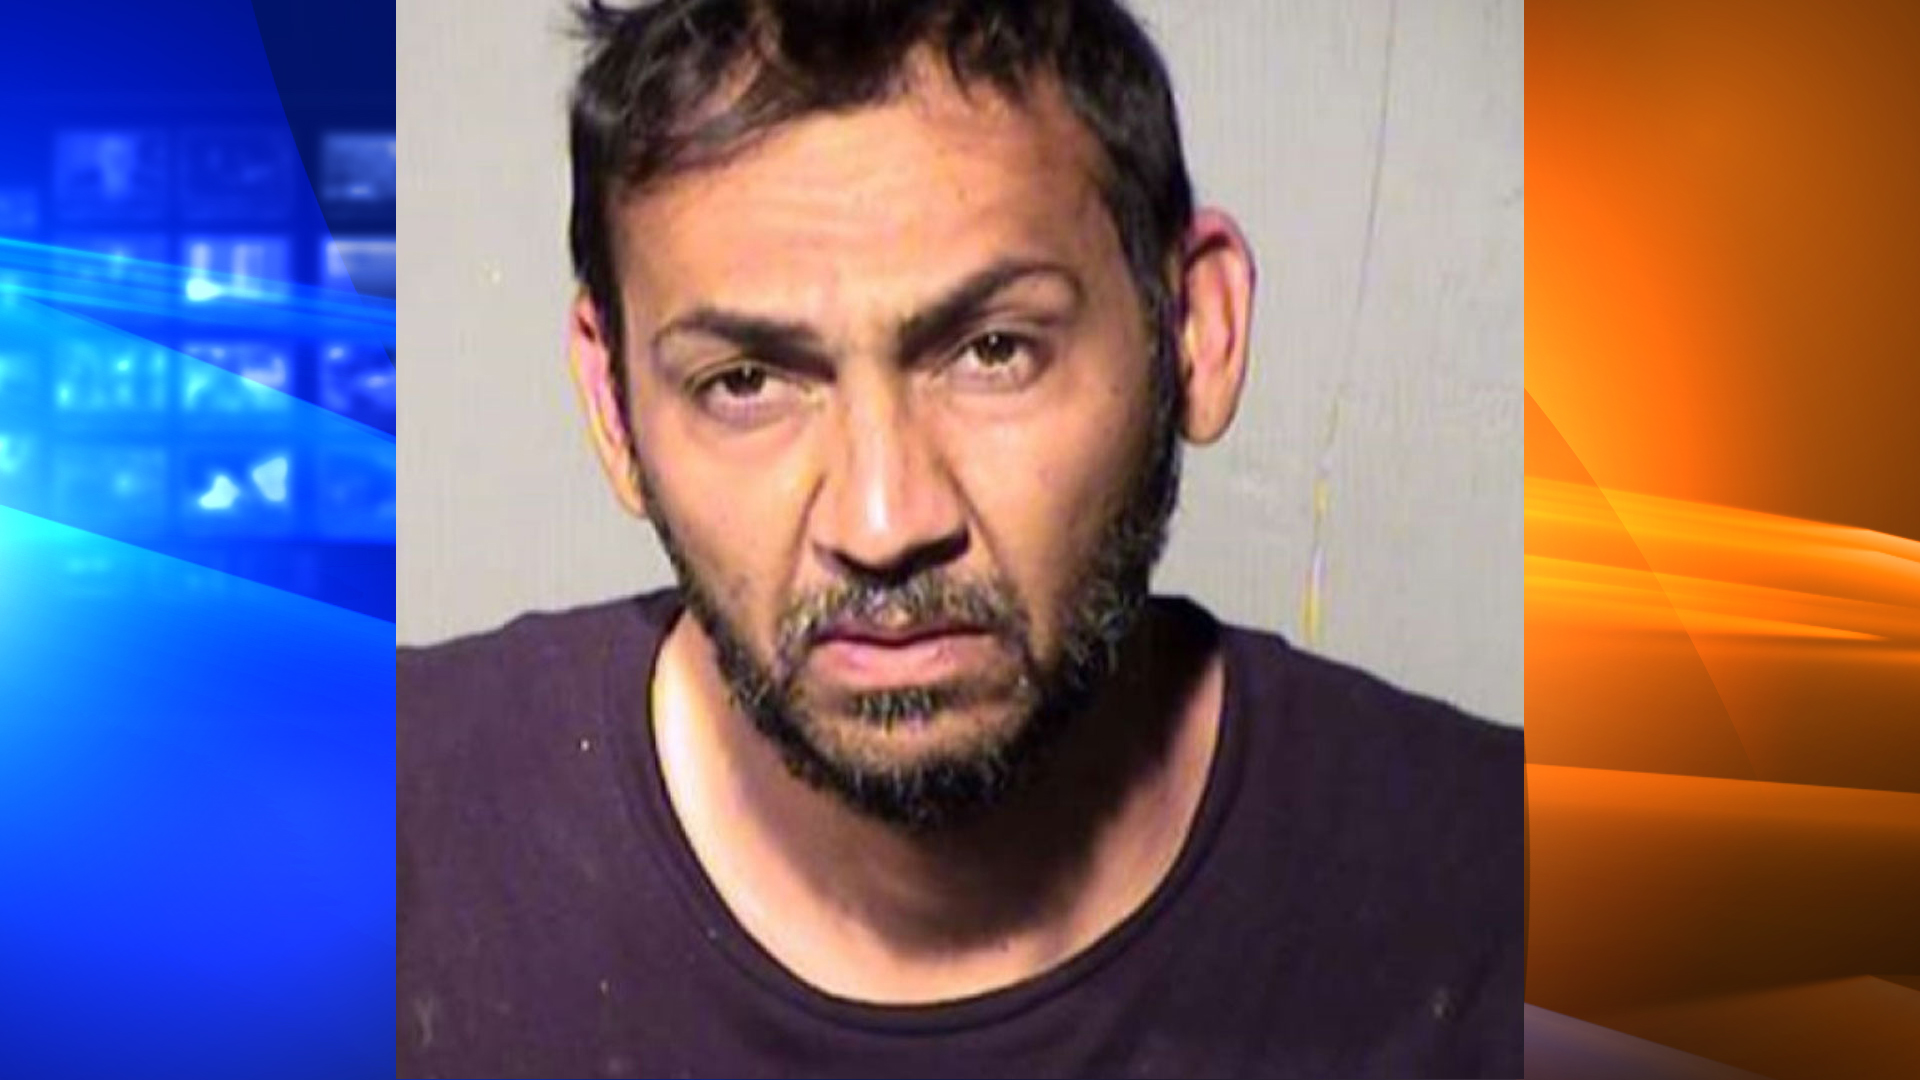 Danny Nicholas is seen in a booking photo obtained by KNXV and distributed by the CNN Wire.